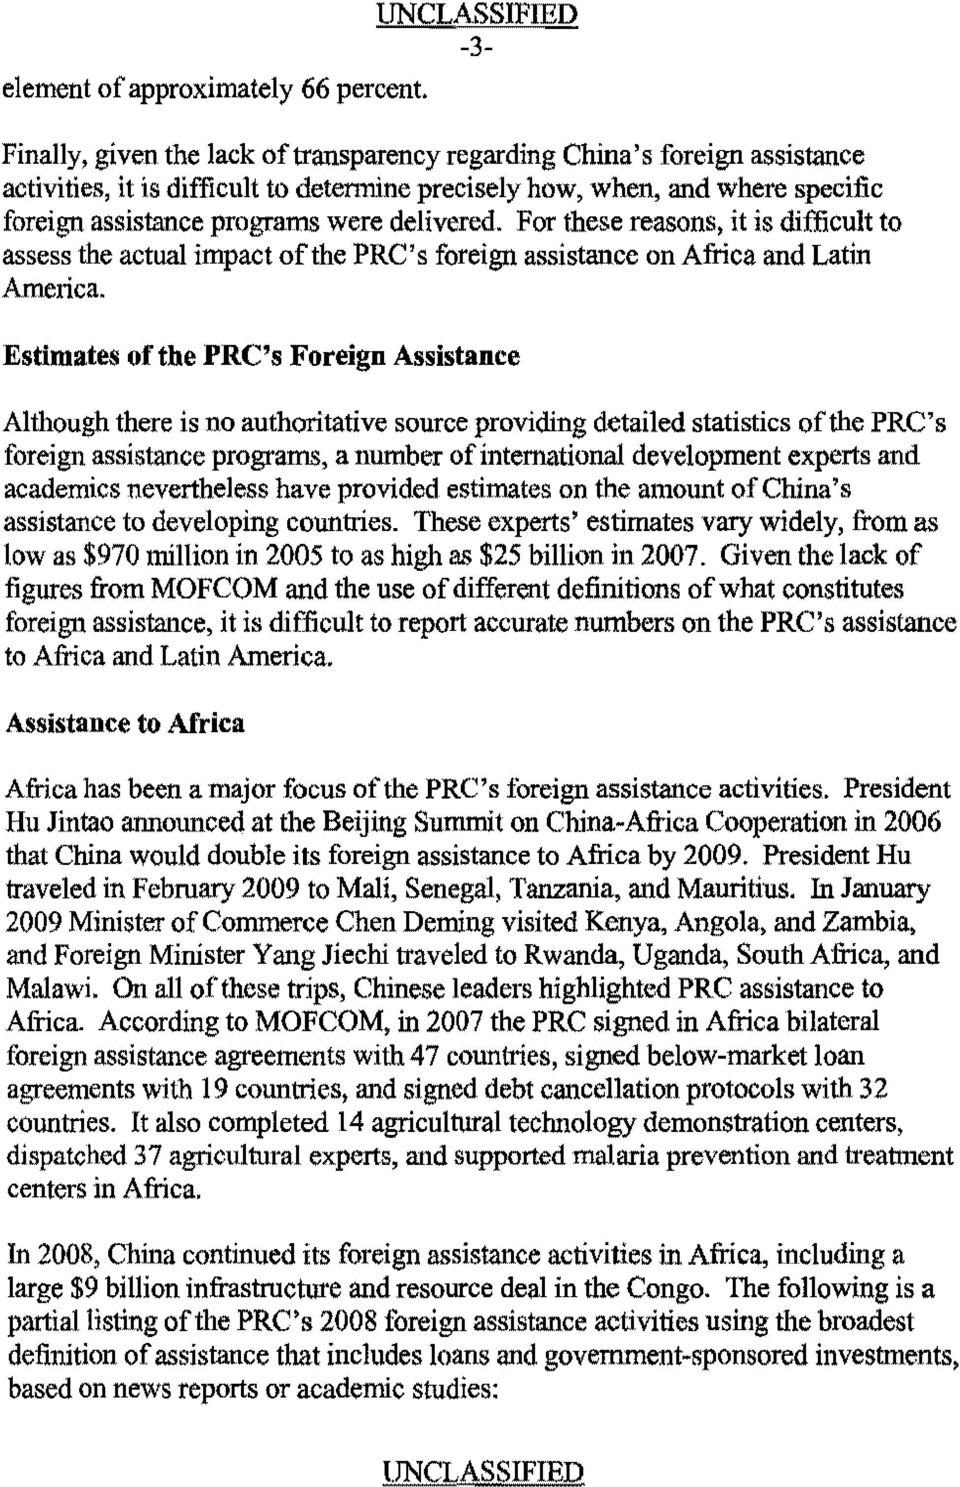 delivered. For these reasons, it is difficult to assess the actual impact of the PRC's foreign assistance on Africa and Latin America.